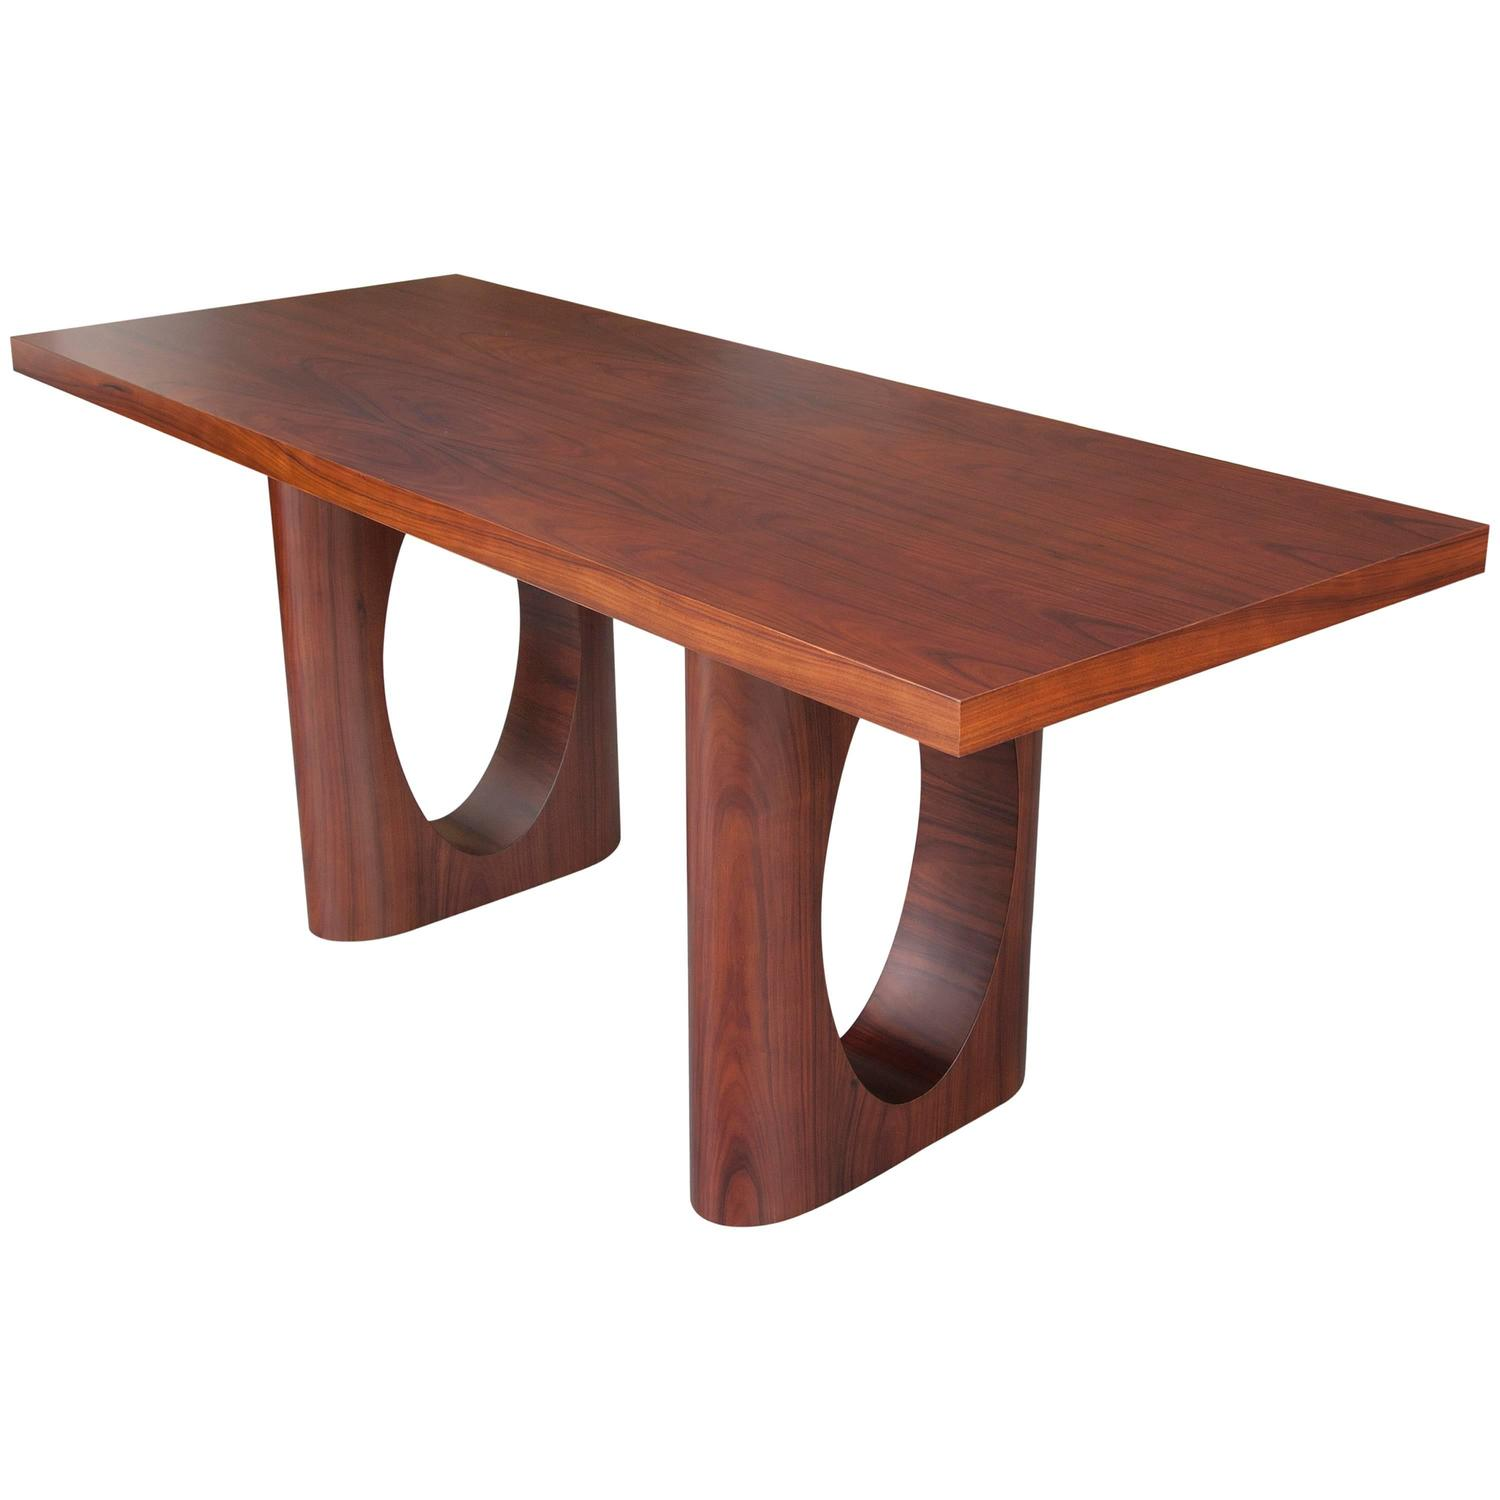 Taking Wooden Furniture To Australia Taking Wooden Furniture To New Zealand Tales Of Oak Table